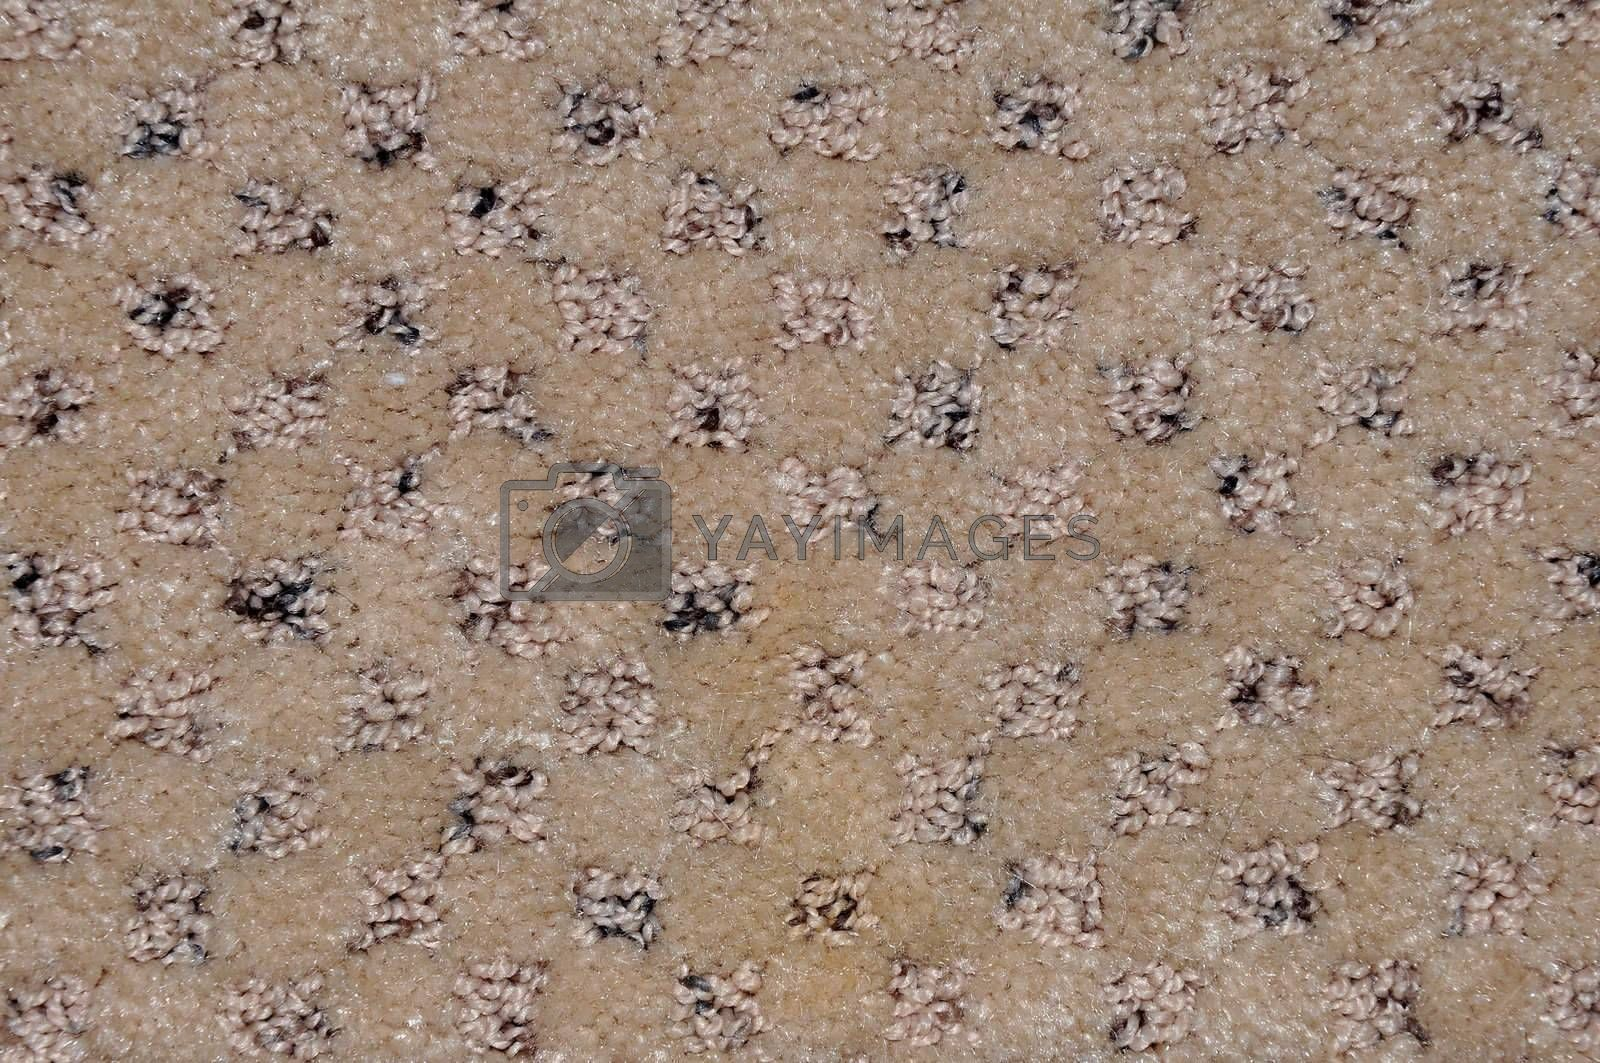 abstract view of a brown and tan carpet